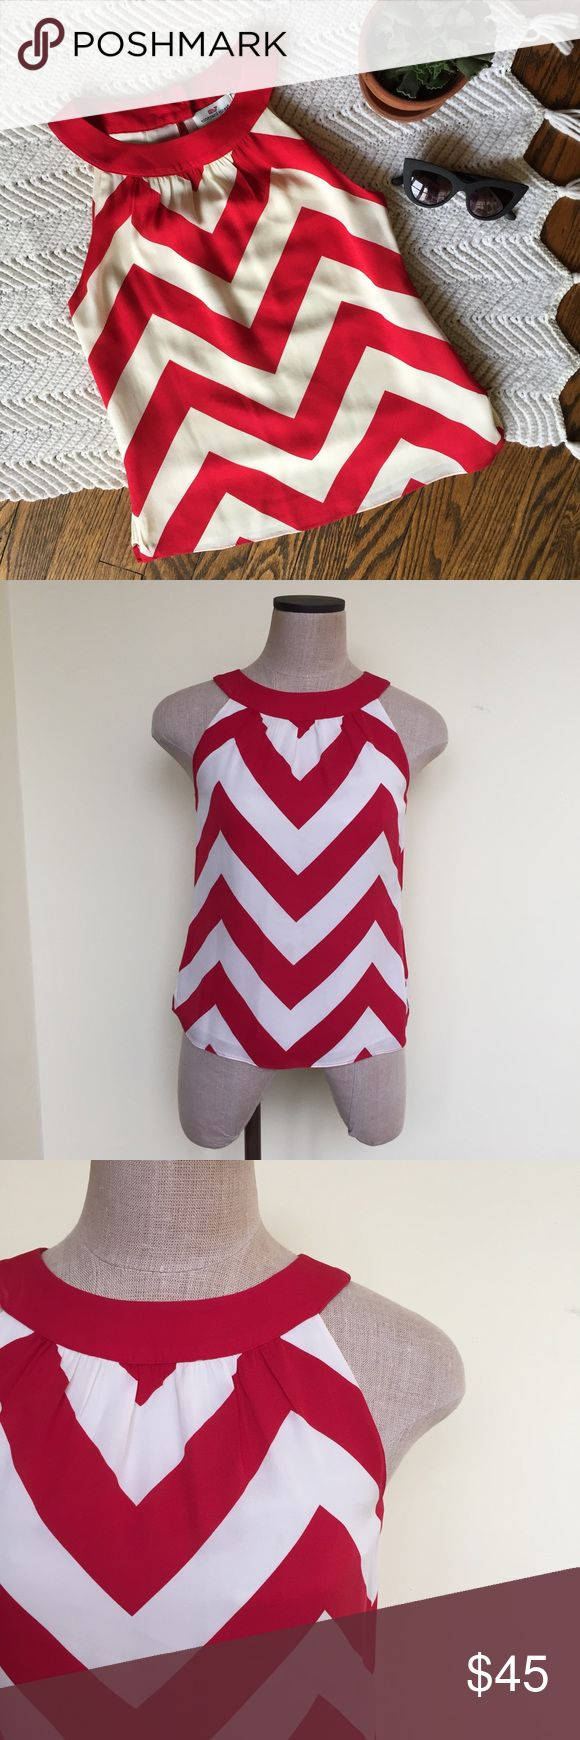 Vineyard Vines silk chevron top Super cute sleeveless top by Vineyard Vines. Red and white chevron pattern.  100% silk. In excellent condition. No flaws. Size 0. No trades. Vineyard Vines Tops